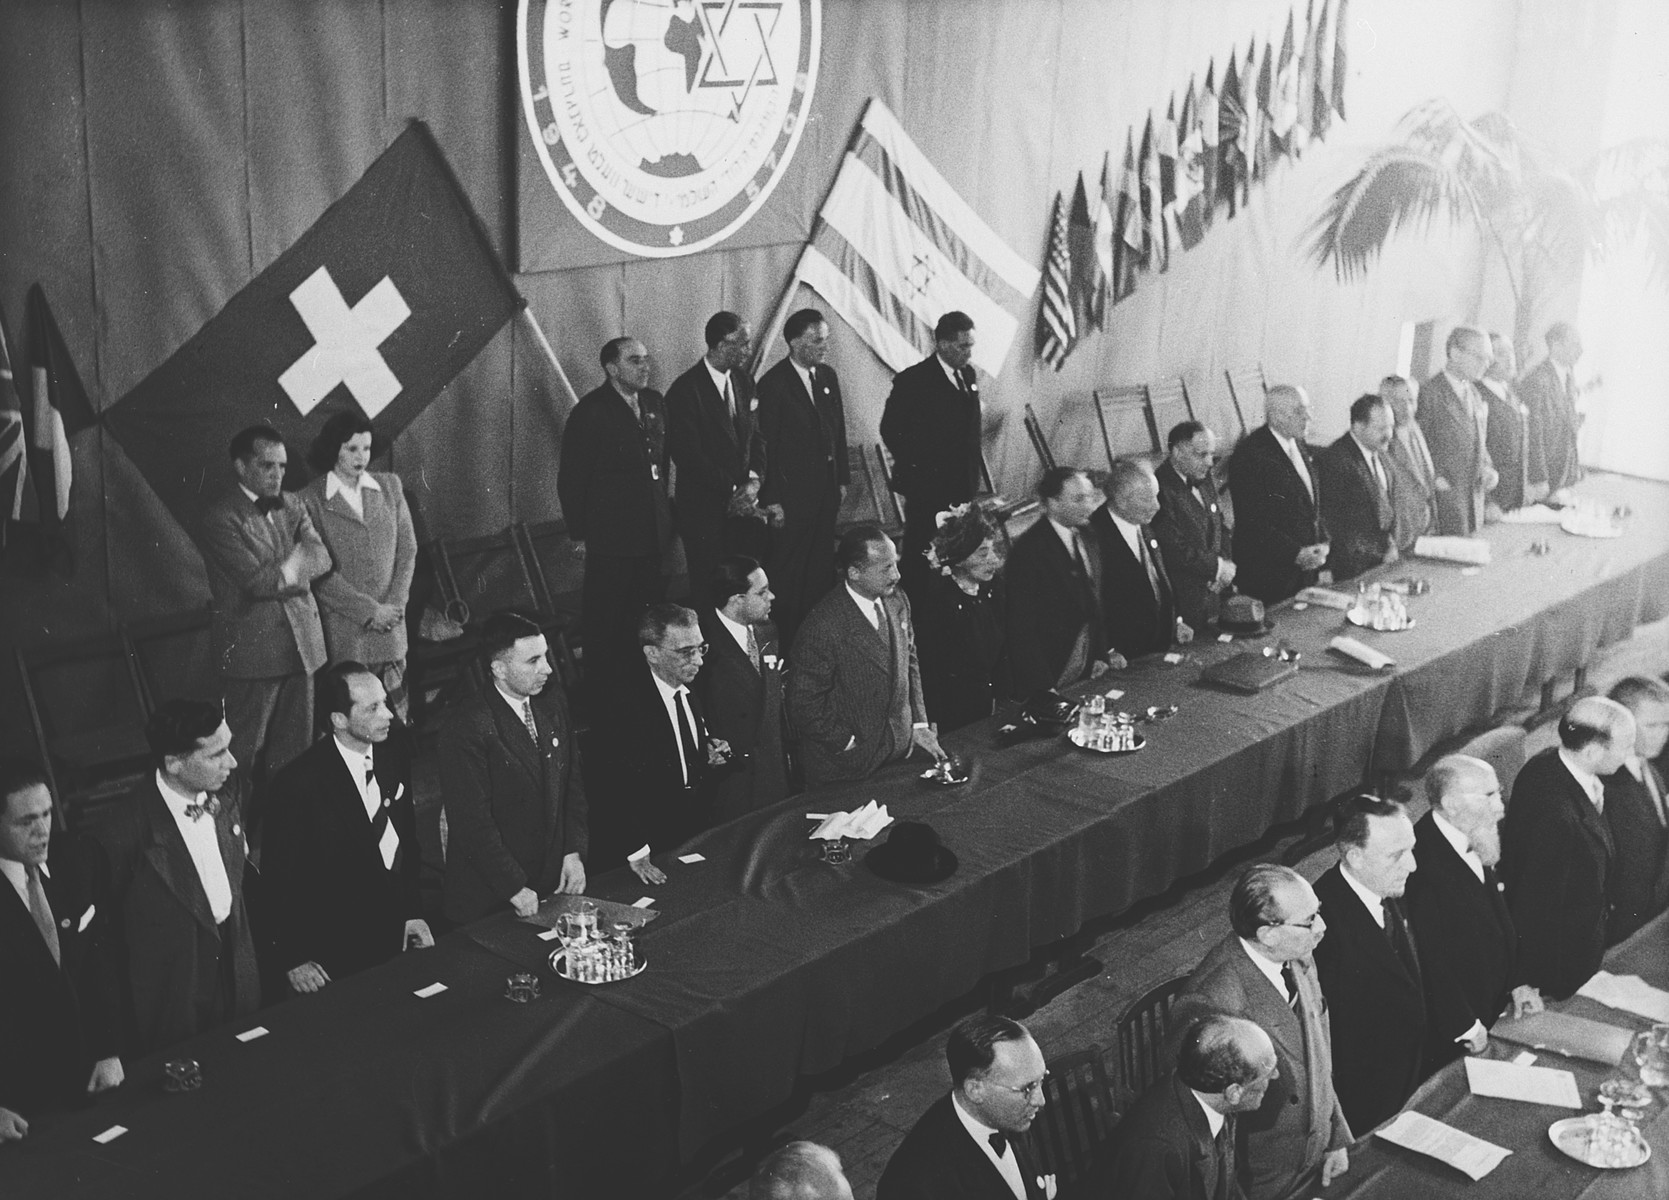 The Presidium at the opening session of the Assembly of the World Jewish Congress in Montreux, Switzerland.   Among those pictured is Gerhart Riegner (in the second row third from the left).